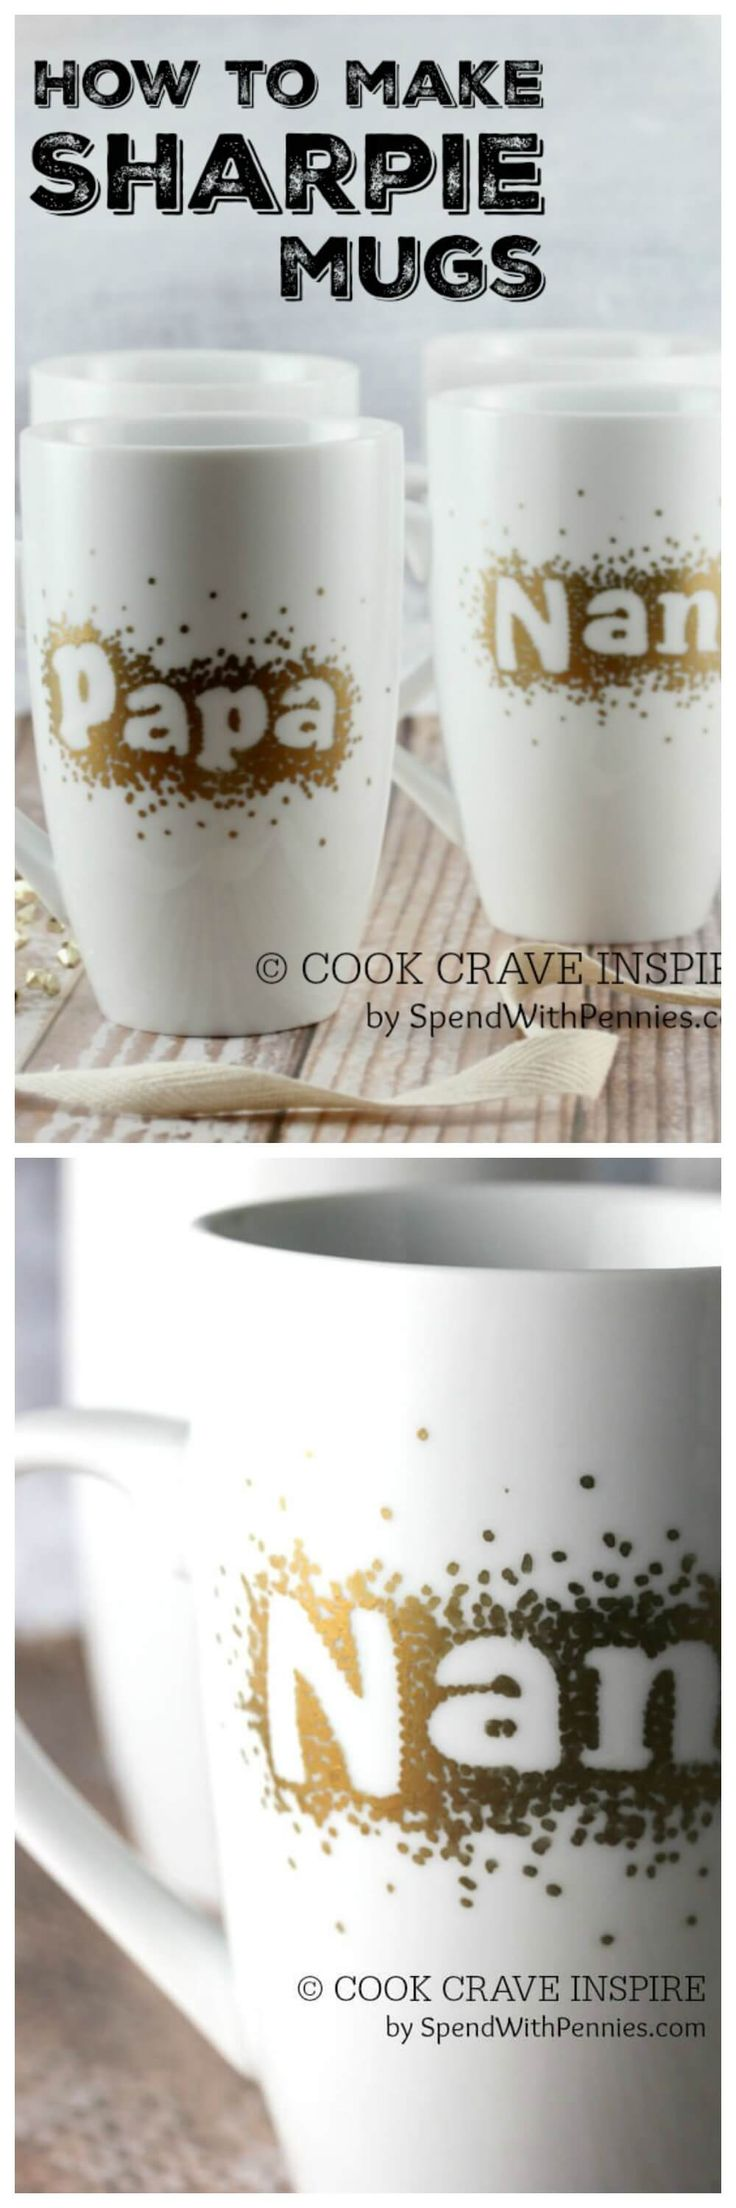 SHARPIE MUGS! You can use any color and any word or shape in this step-by-step tutorial! These are super easy to make and the perfect gift!